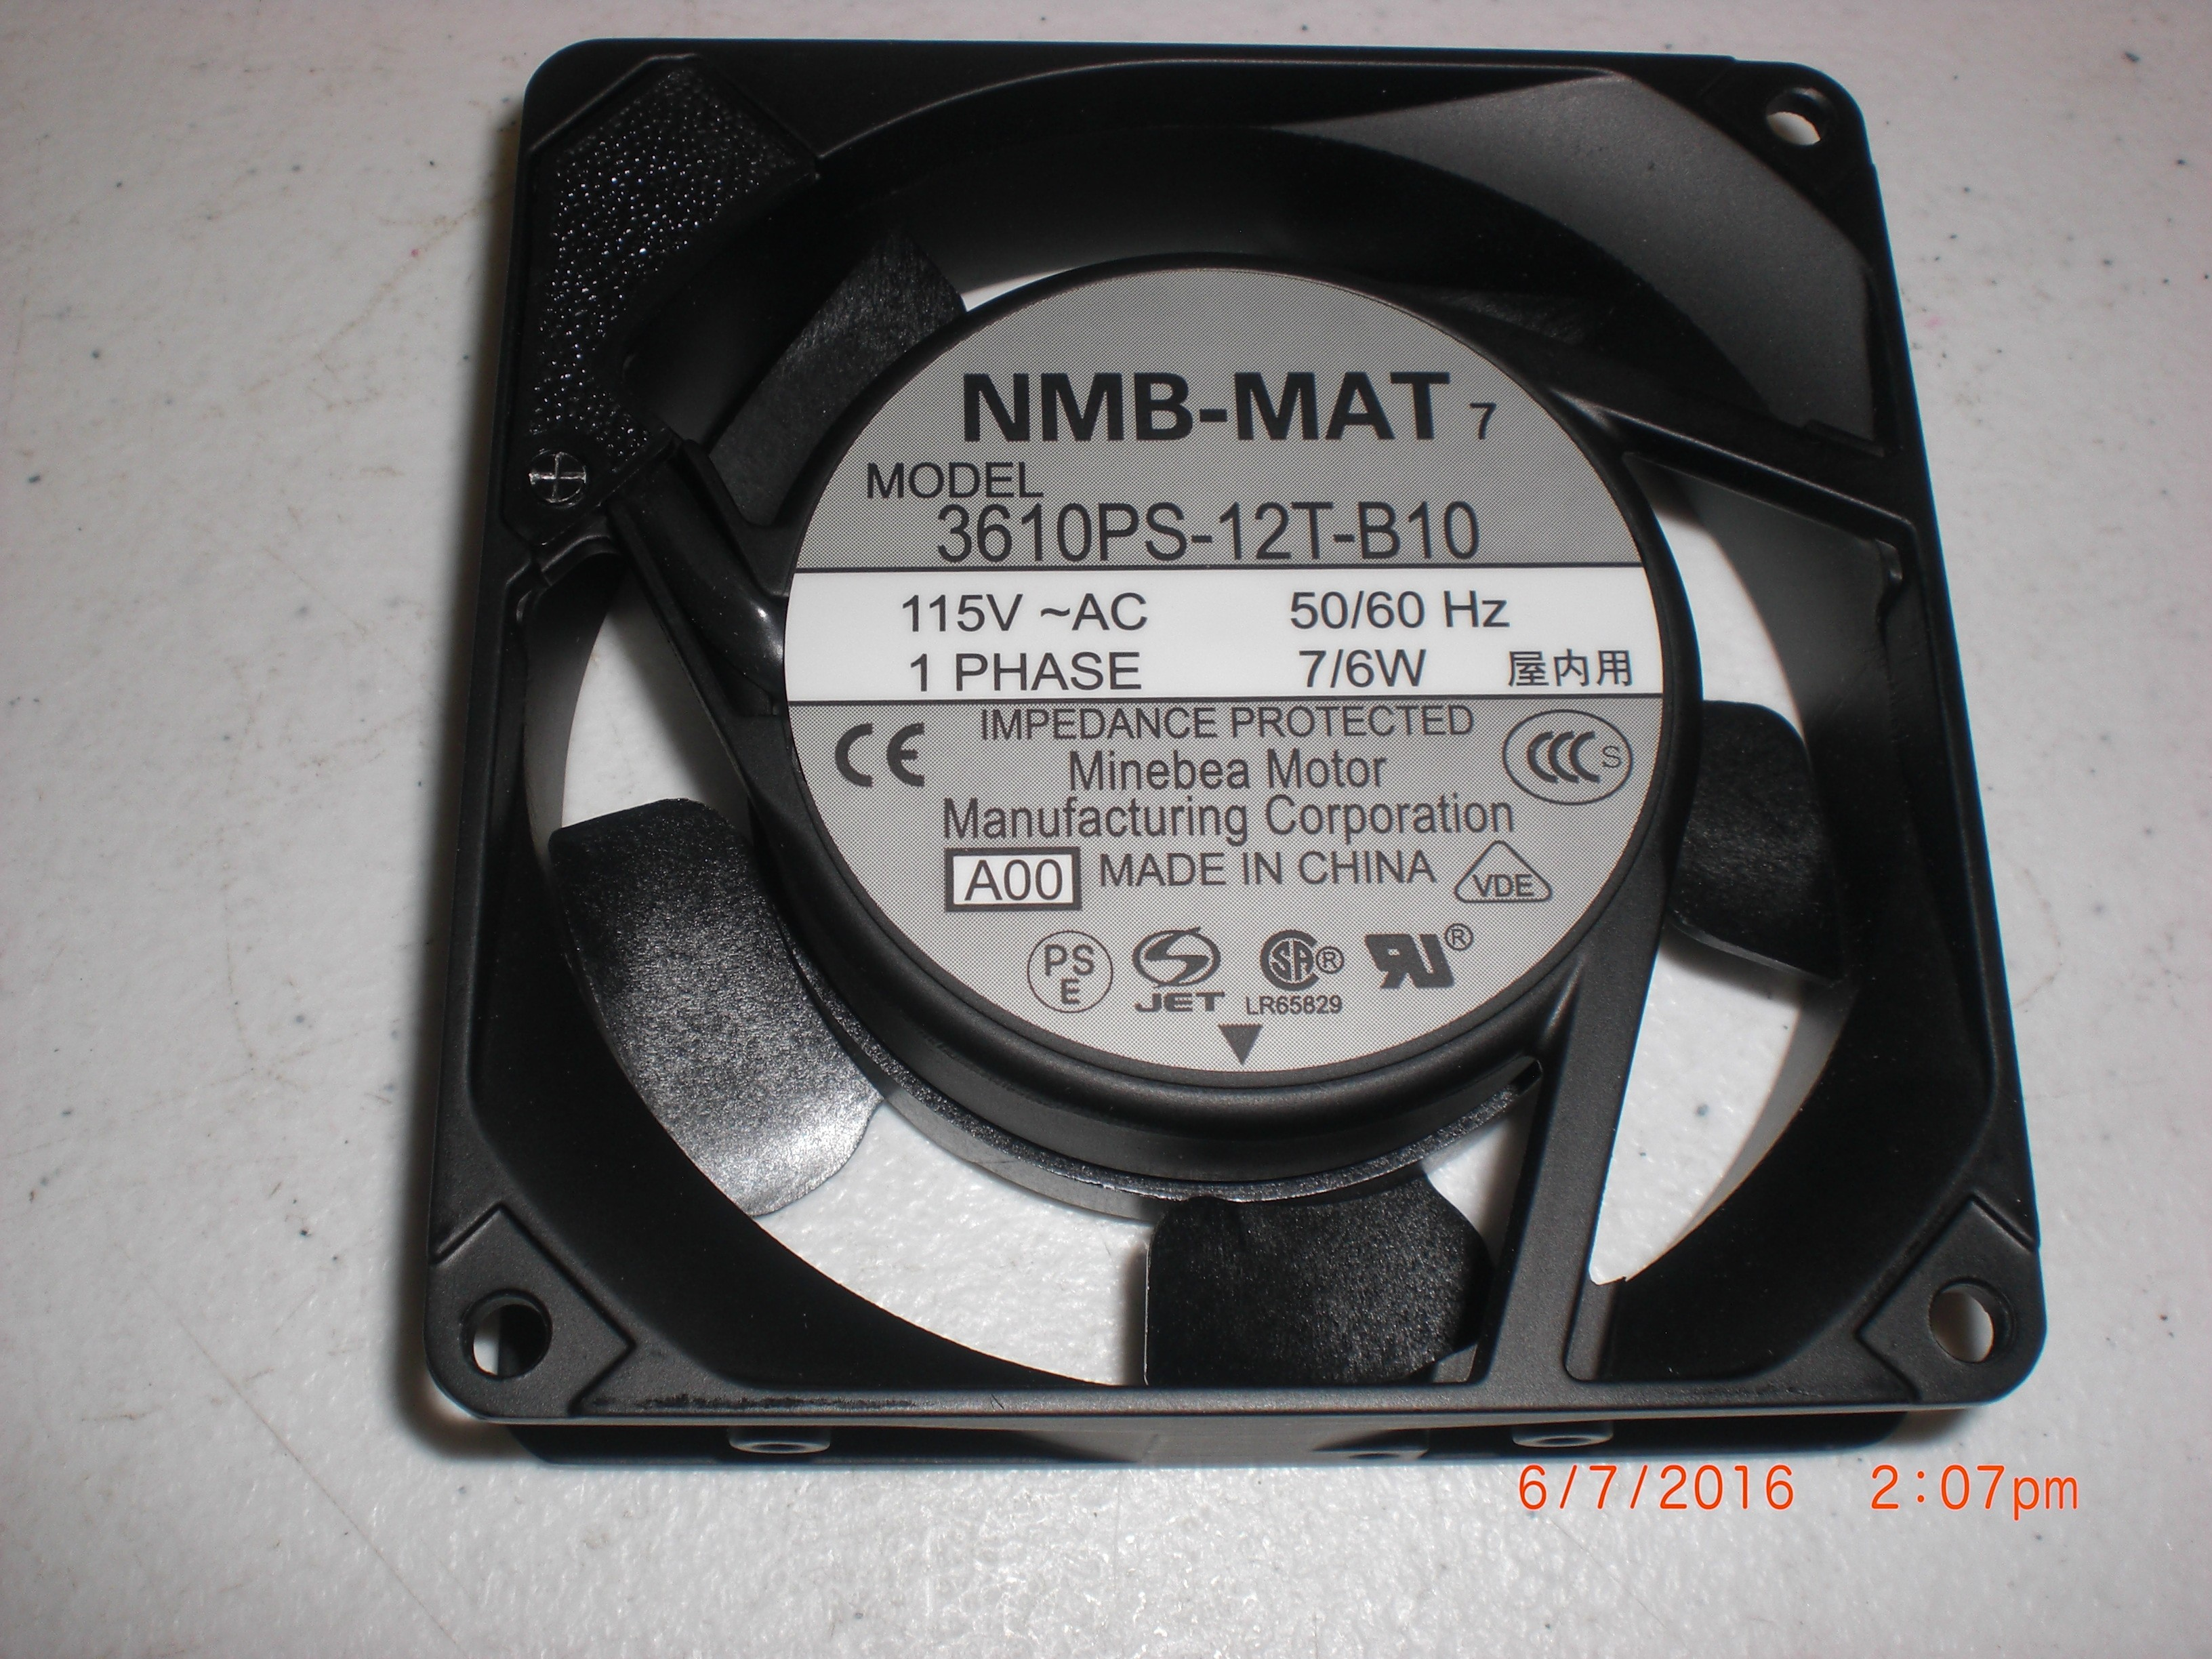 printers pbt hl mats nmb other cooling parts assembly fr more printer brother fan mat views